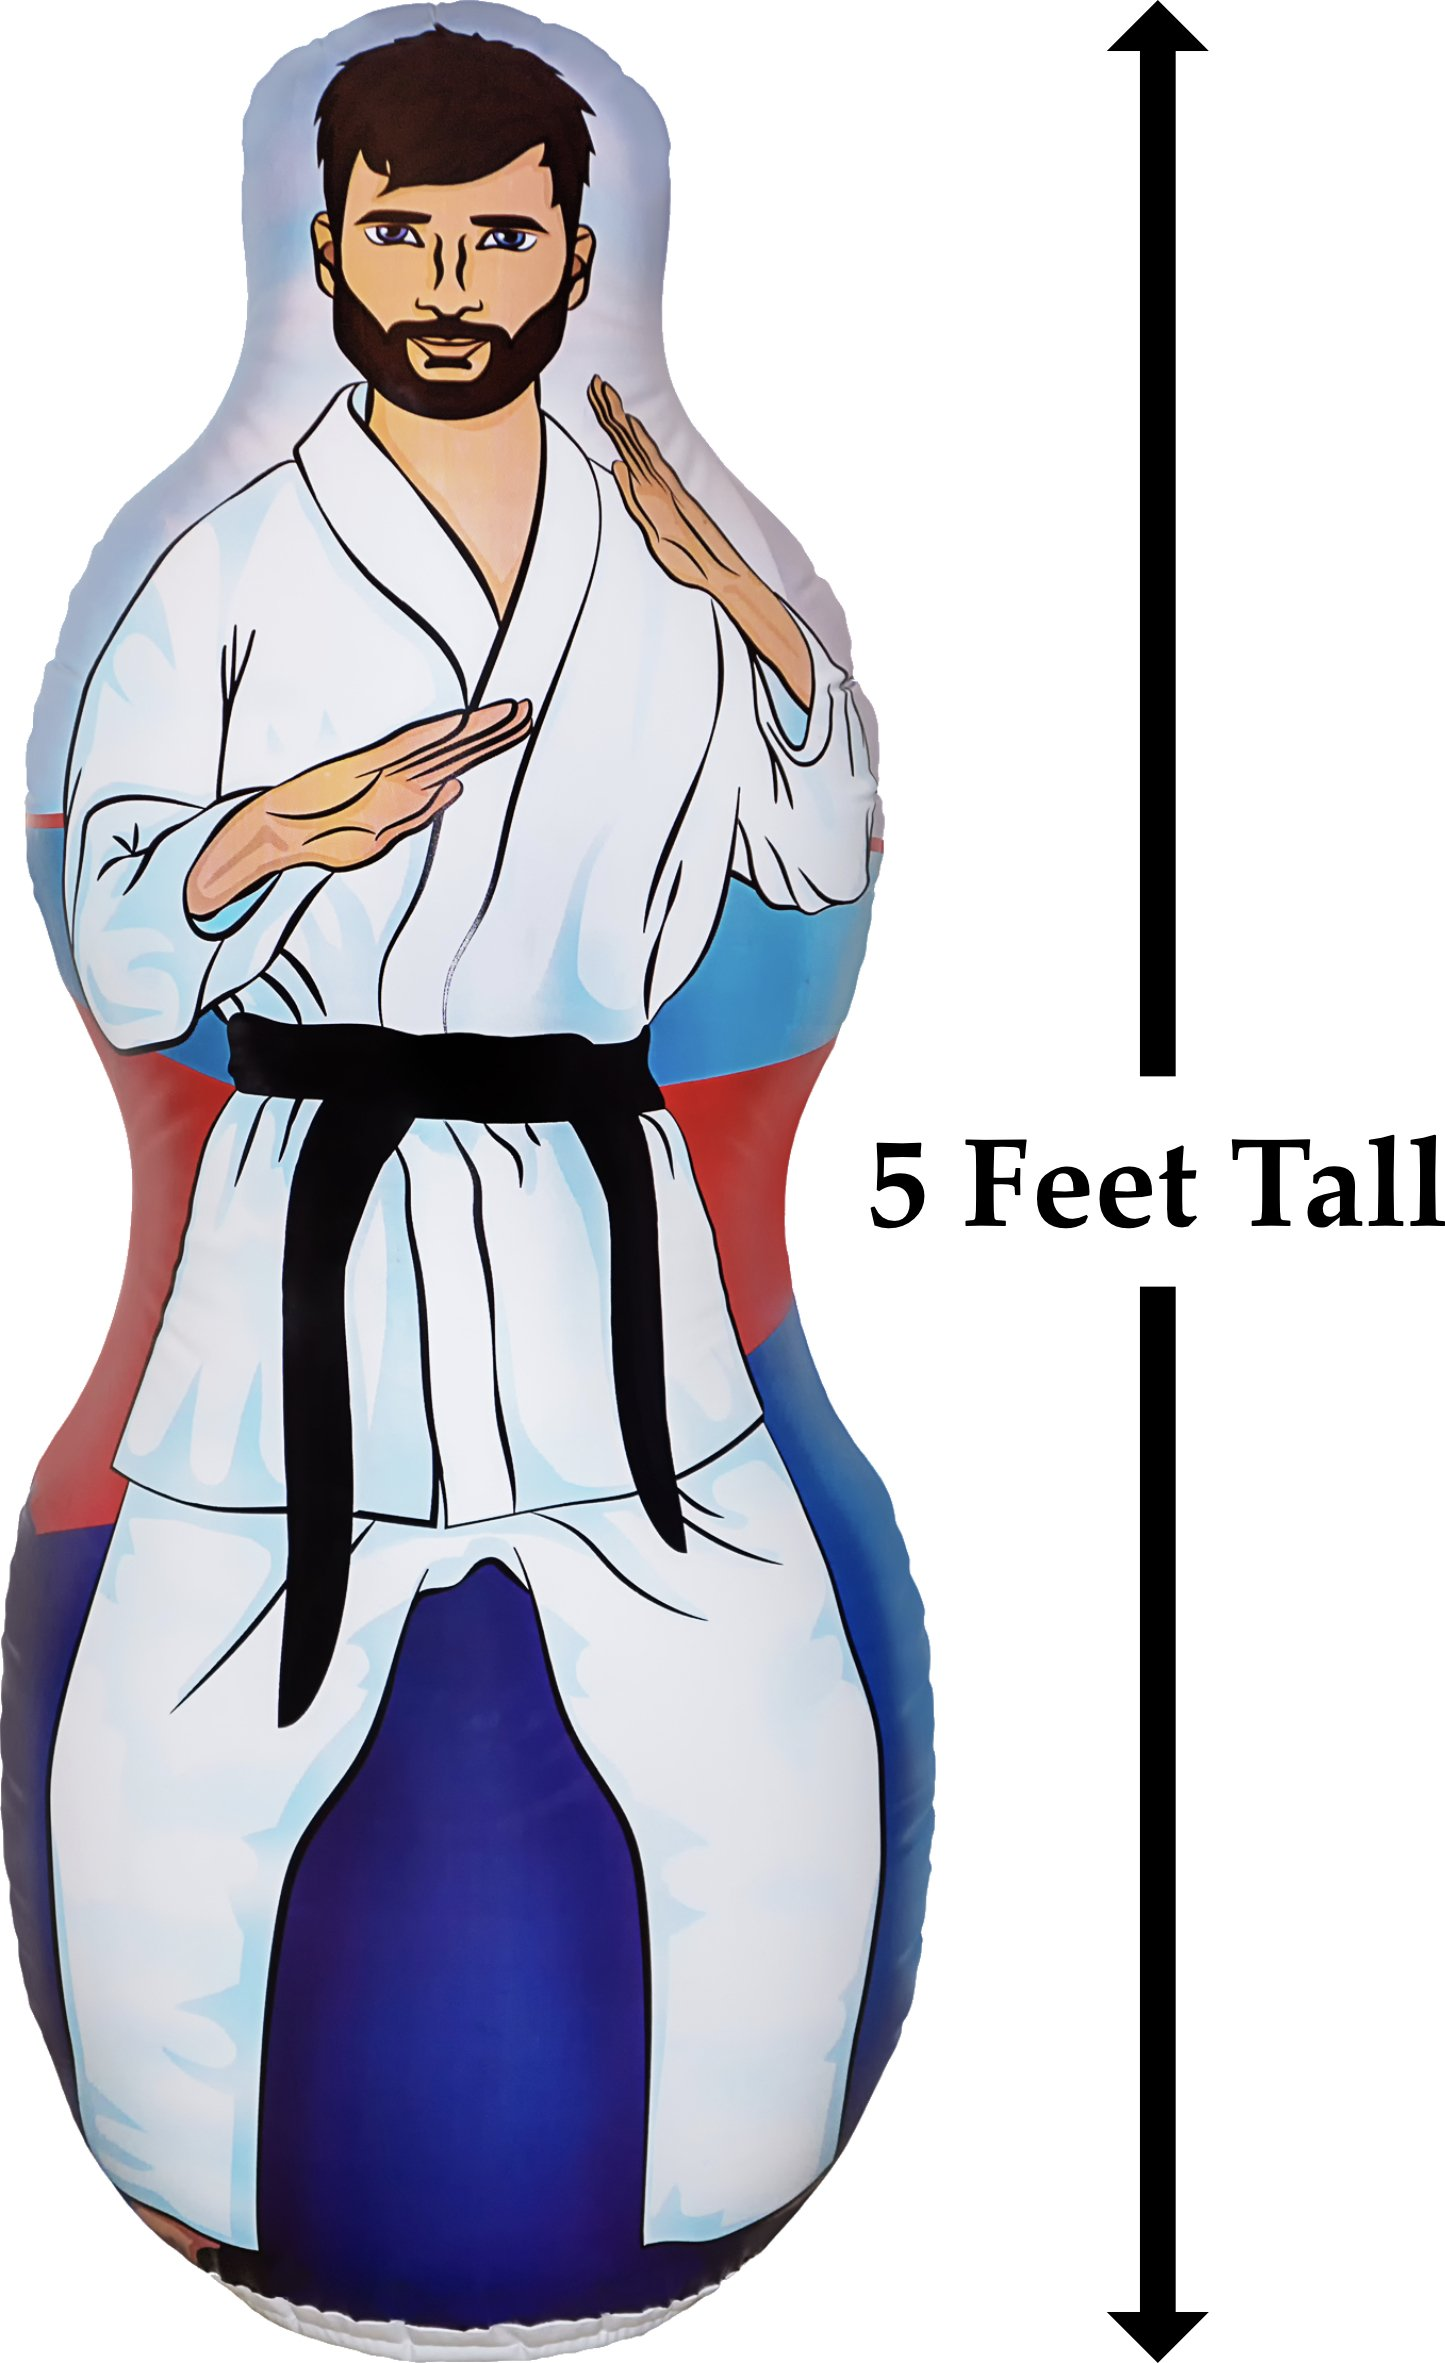 Infinafit Inflatable Two Sided Karate and Boxing Punching Bag   Includes One Inflatable 5 Foot Tall Bop Bag with Illustration of a Karate Master on One Side and Boxer on Reverse Side by ImpiriLux (Image #2)